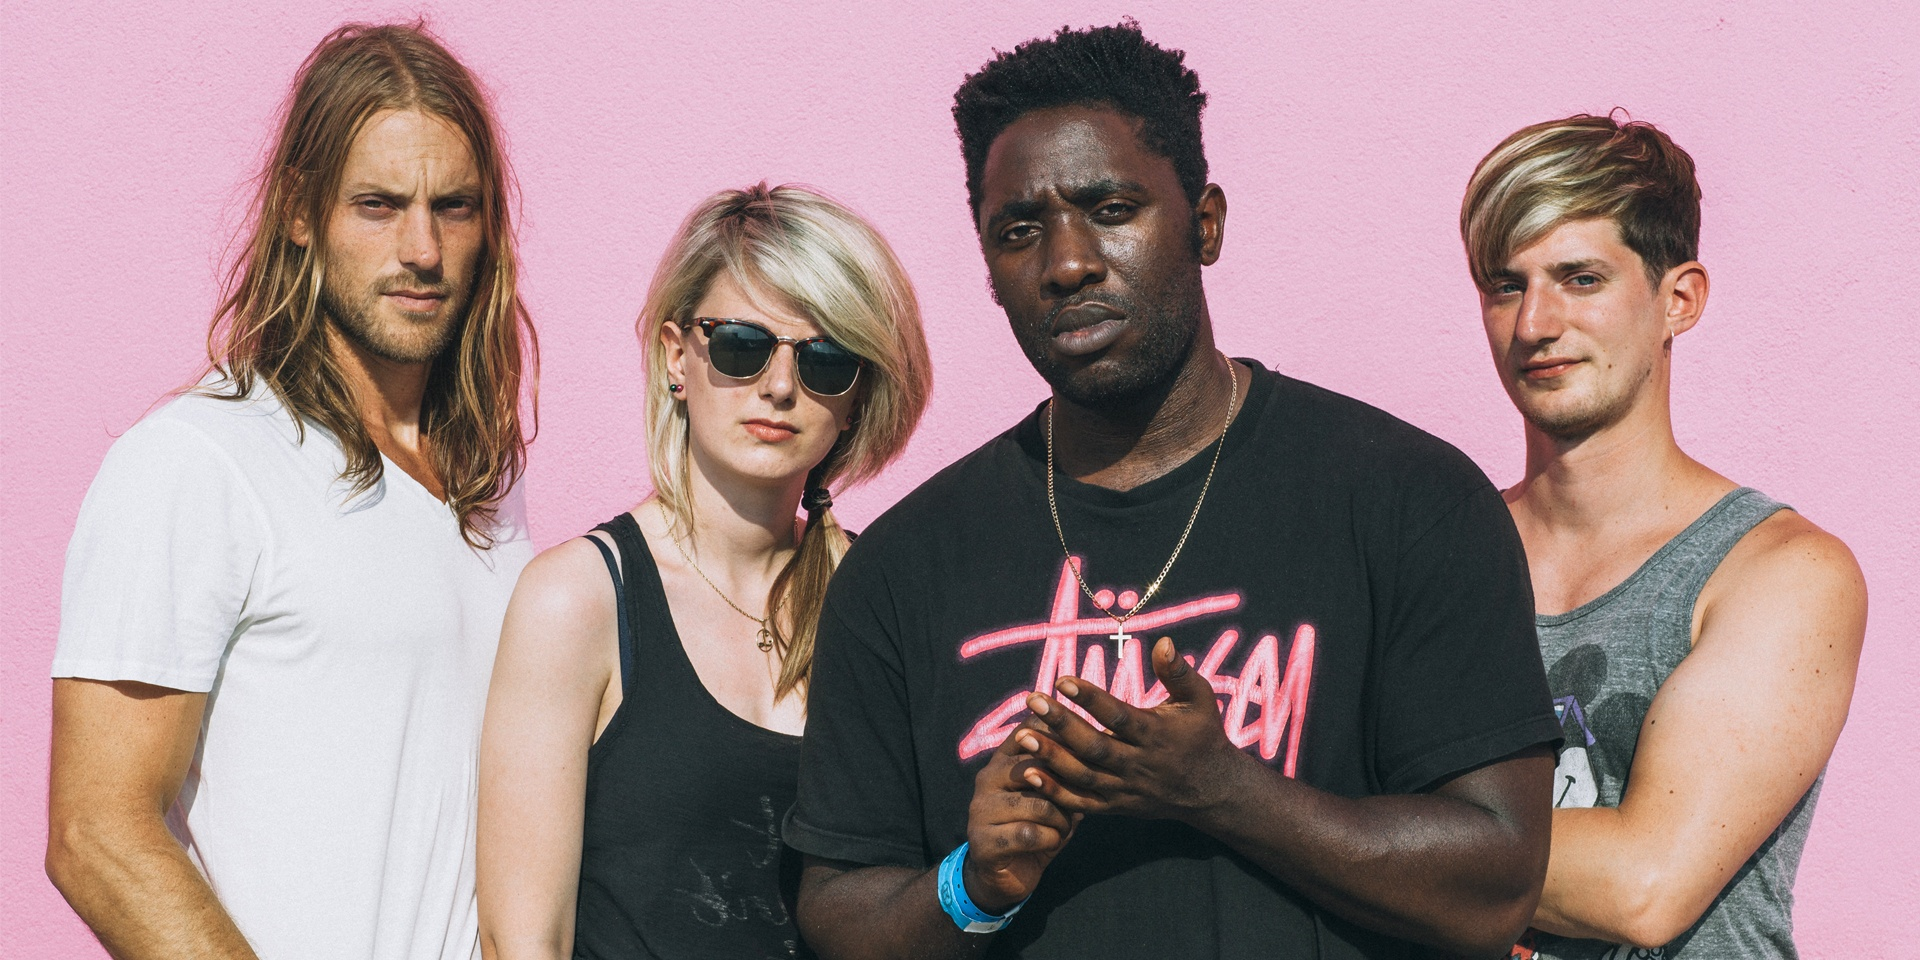 Bloc Party to tour Australia, playing Silent Alarm in full